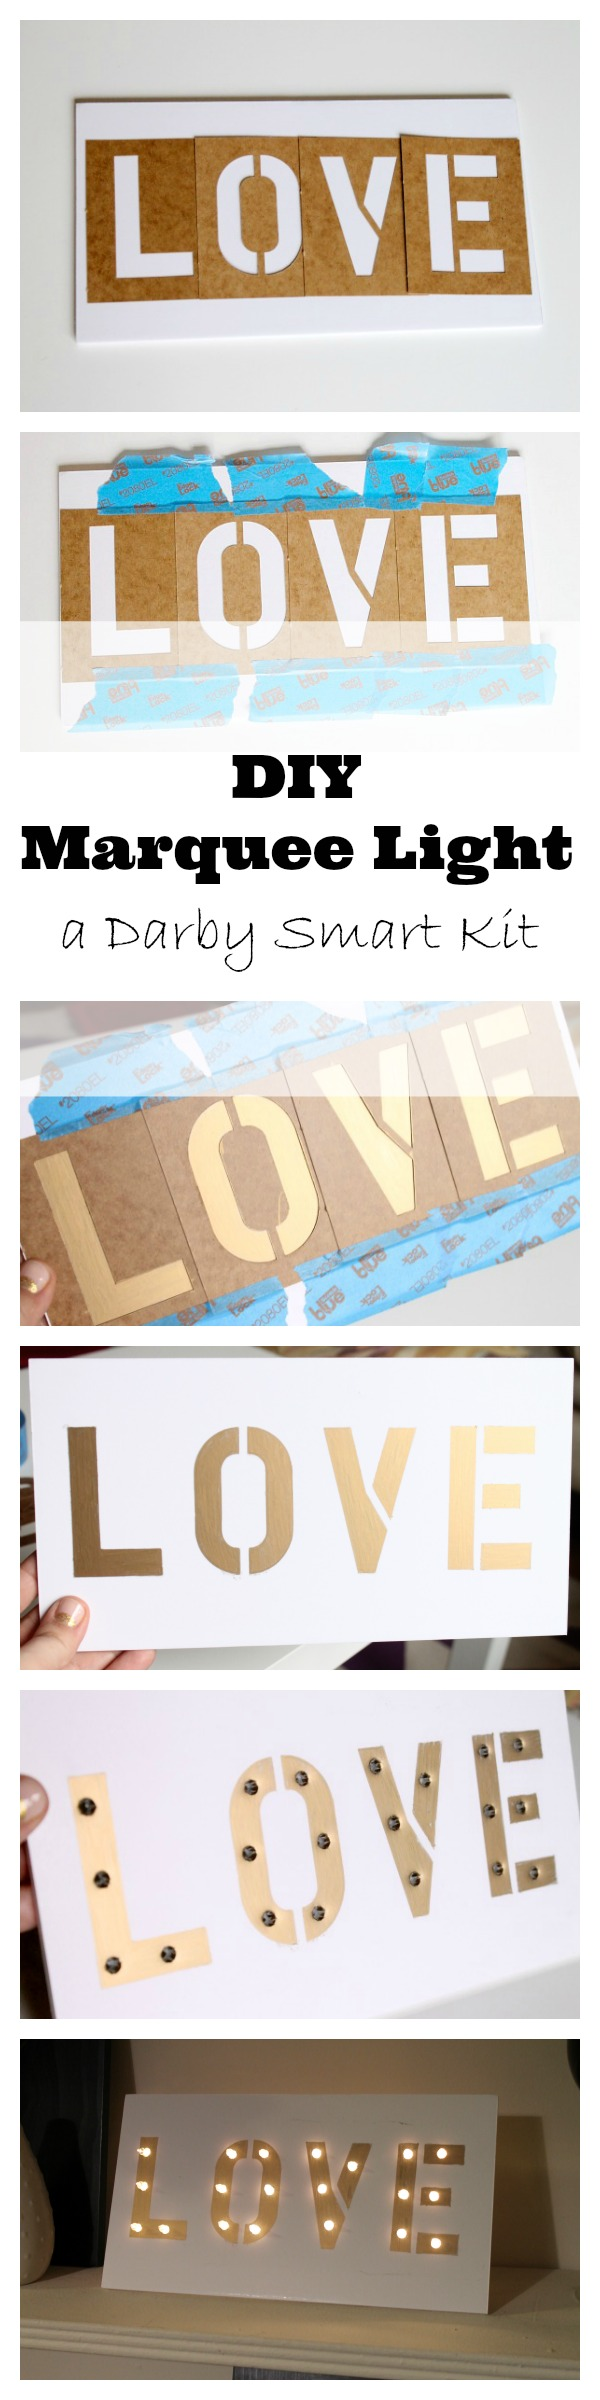 Darby Smart Review and Giveaway, DIY Marquee Light! | Best ...